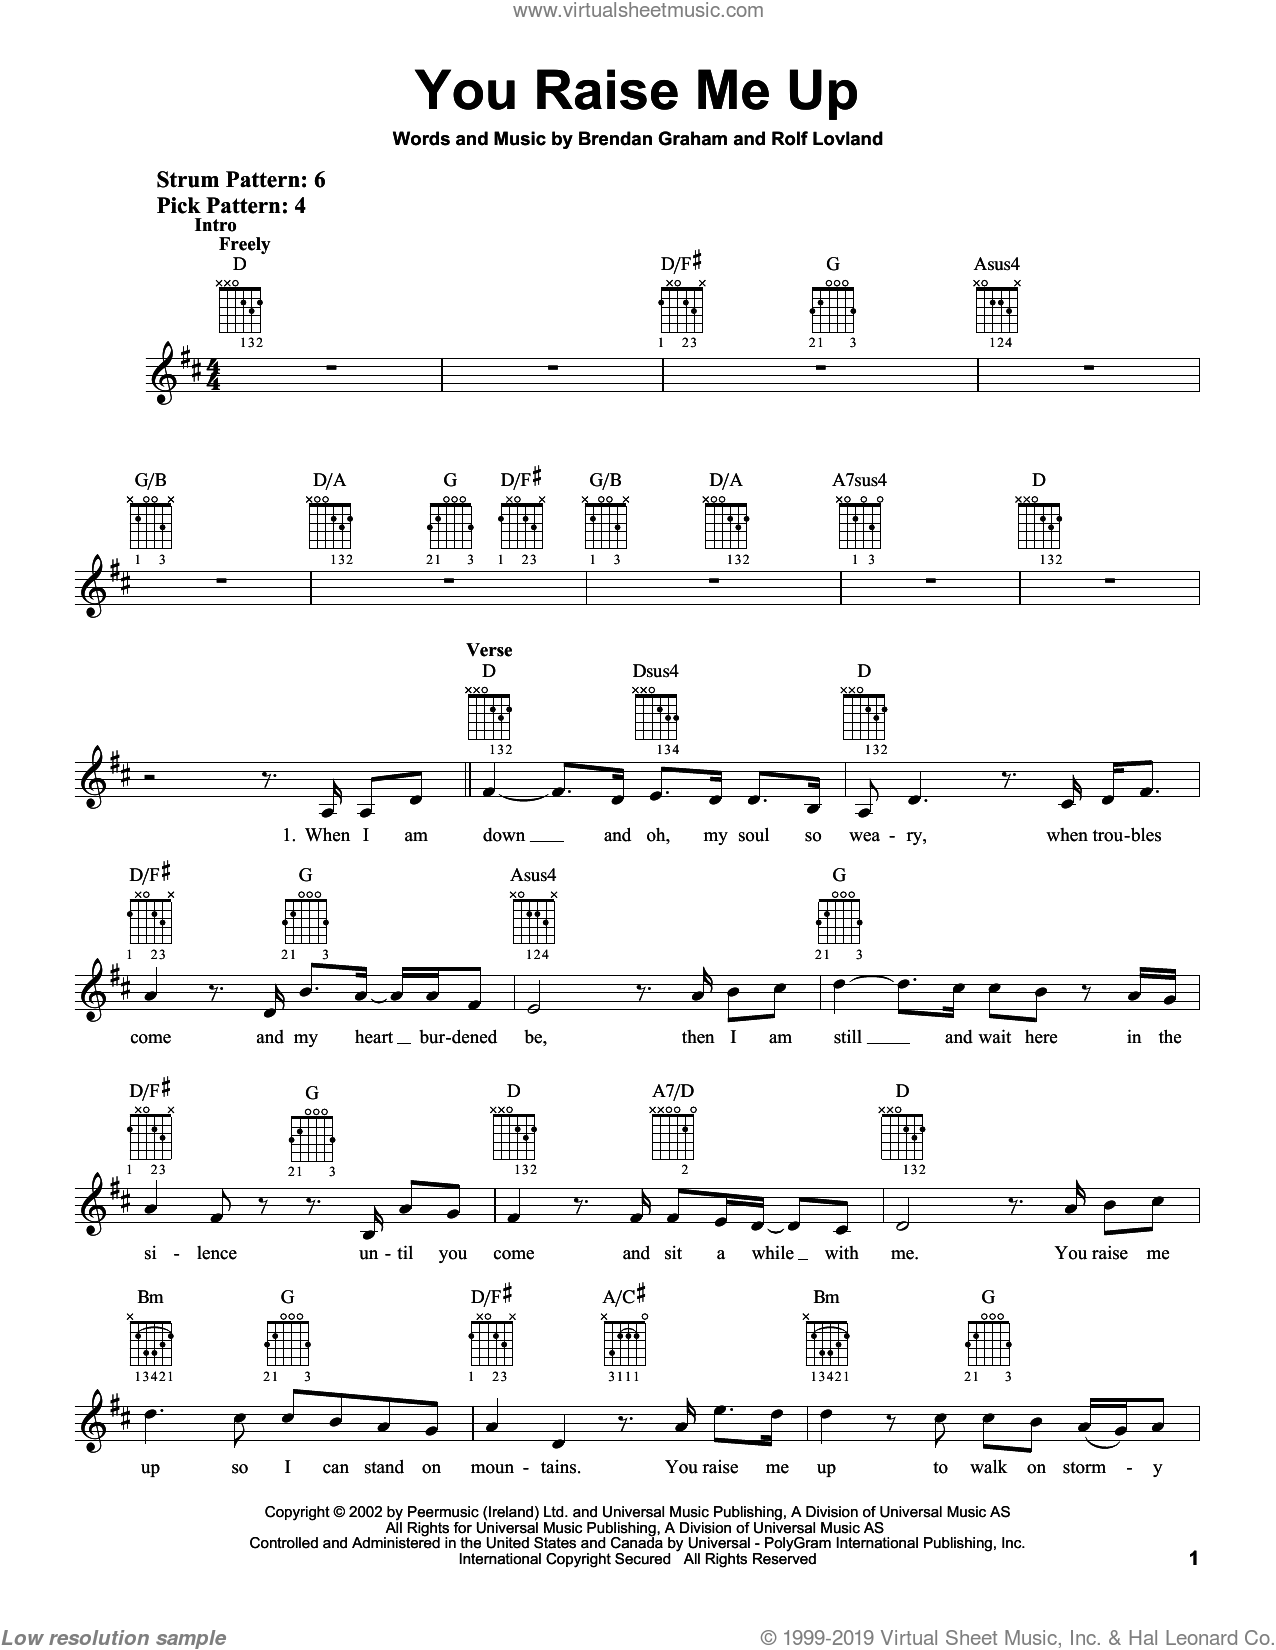 You Raise Me Up sheet music for guitar solo (chords) by Josh Groban, Secret Garden, Brendan Graham and Rolf Lovland, wedding score, easy guitar (chords). Score Image Preview.